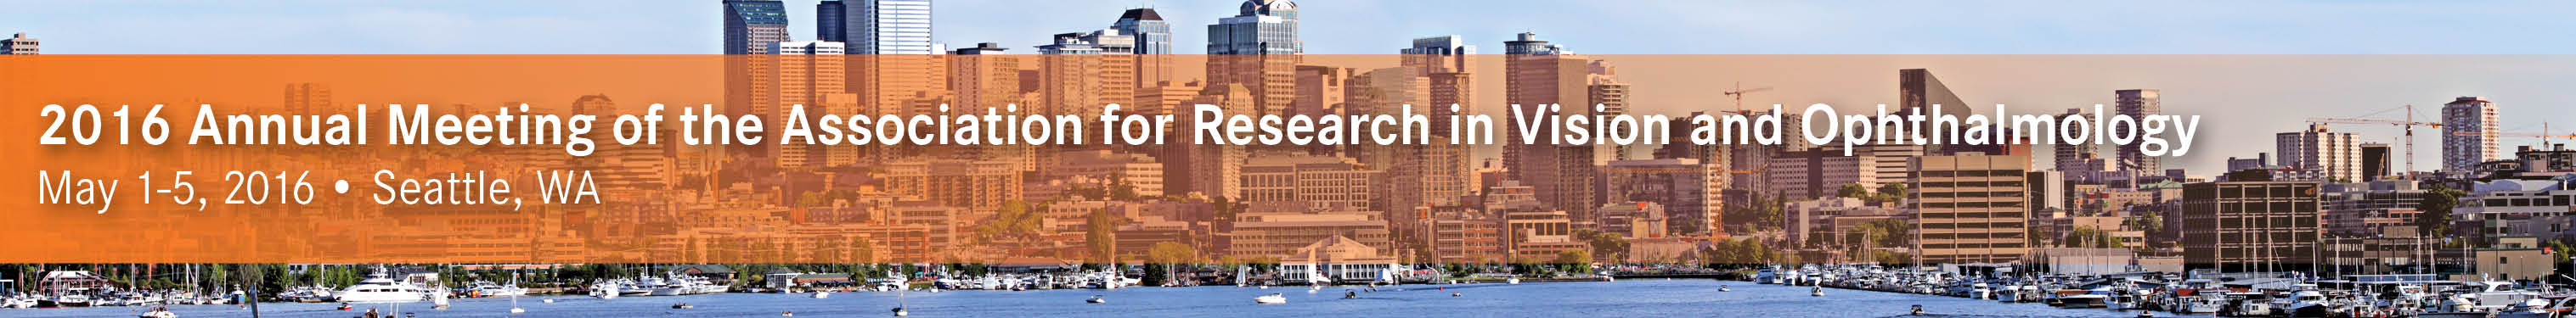 2016 Annual Meeting of the Association for Research in Vision and Ophthalmology